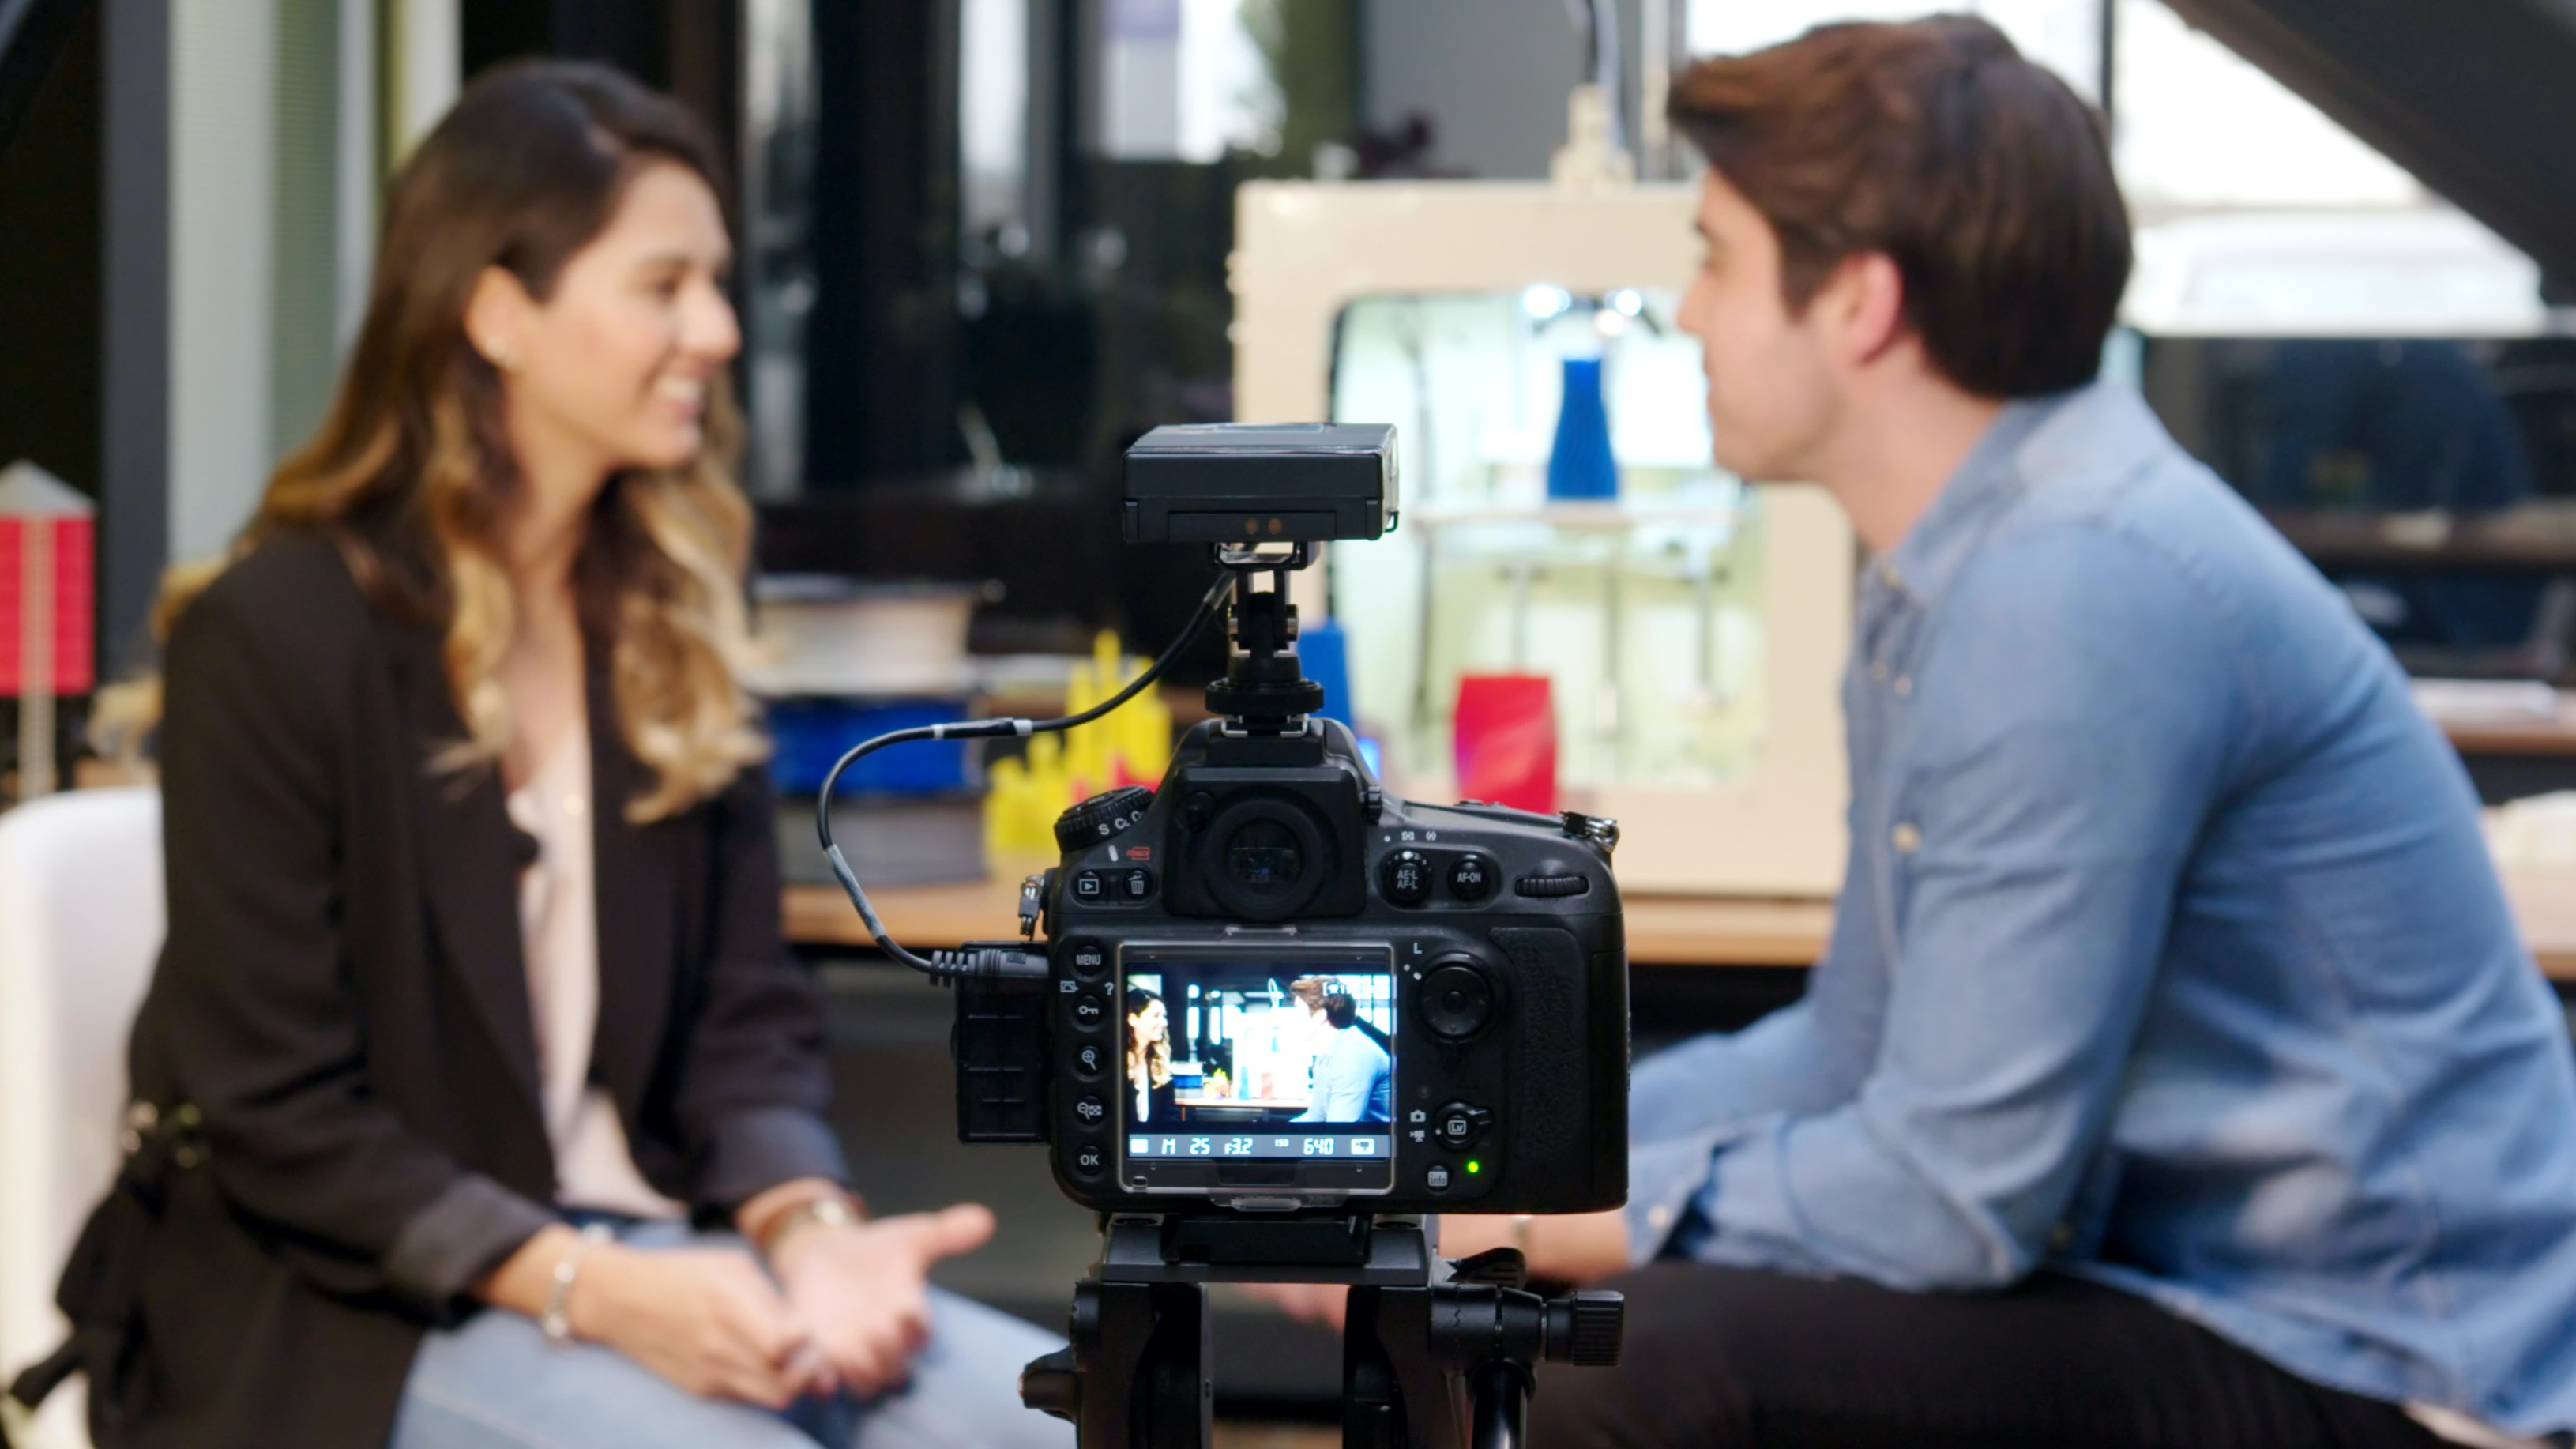 Man and woman being filmed in office environment